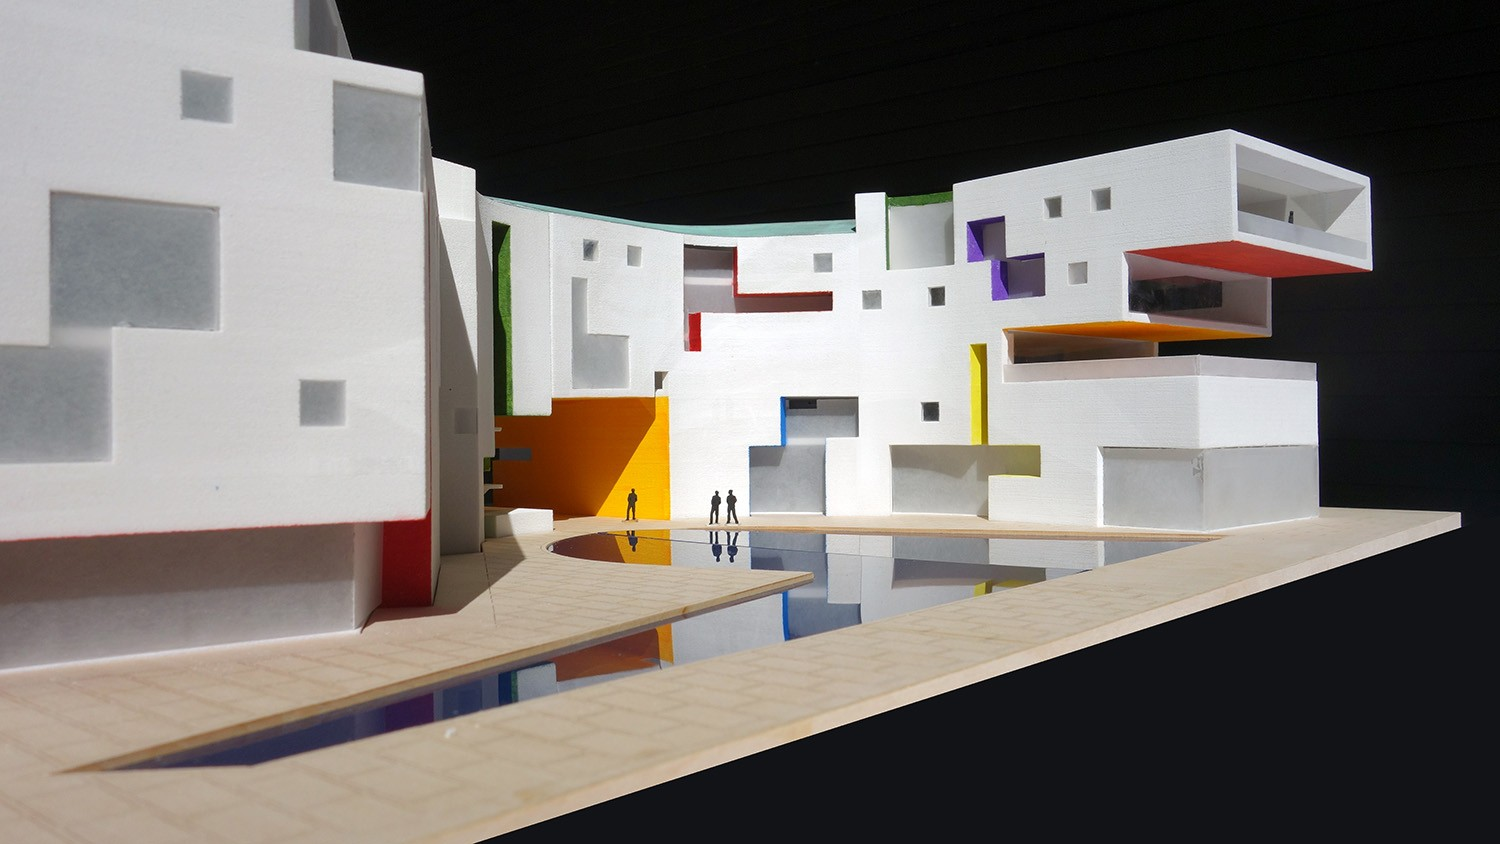 https://stevenholl.sfo2.digitaloceanspaces.com/uploads/projects/project-images/StevenHollArchitects_MGI_SHA-Moscow-Polychromy_WH.jpg